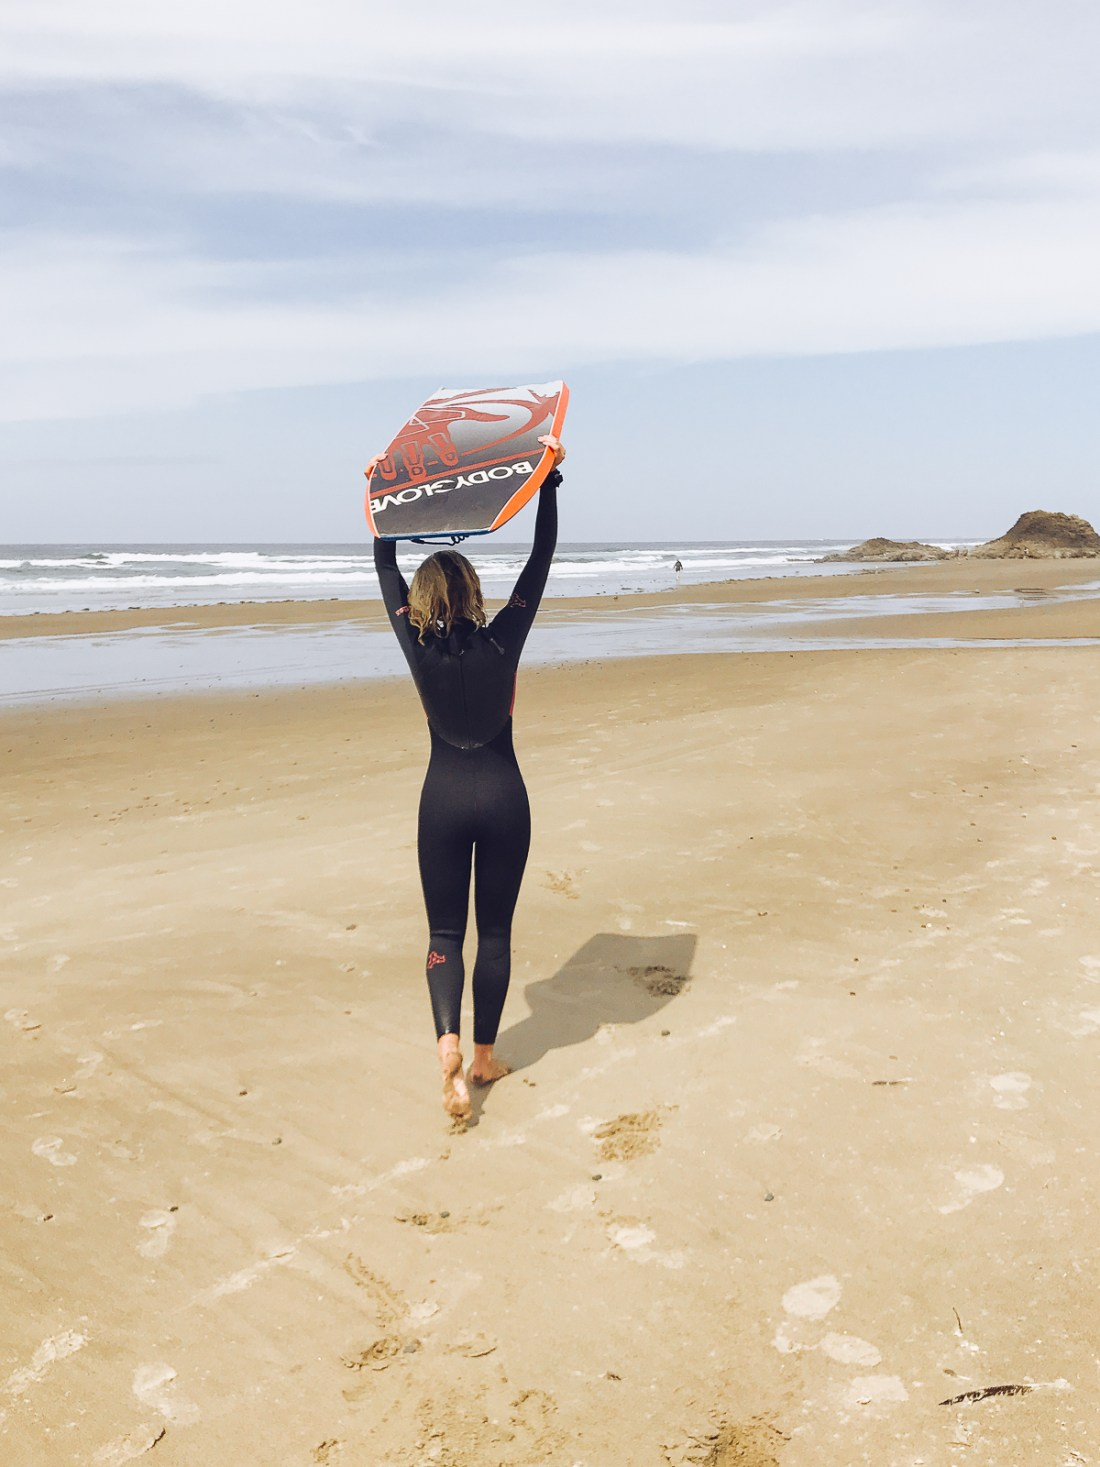 Things to do in Cannon Beach - Boogie Board